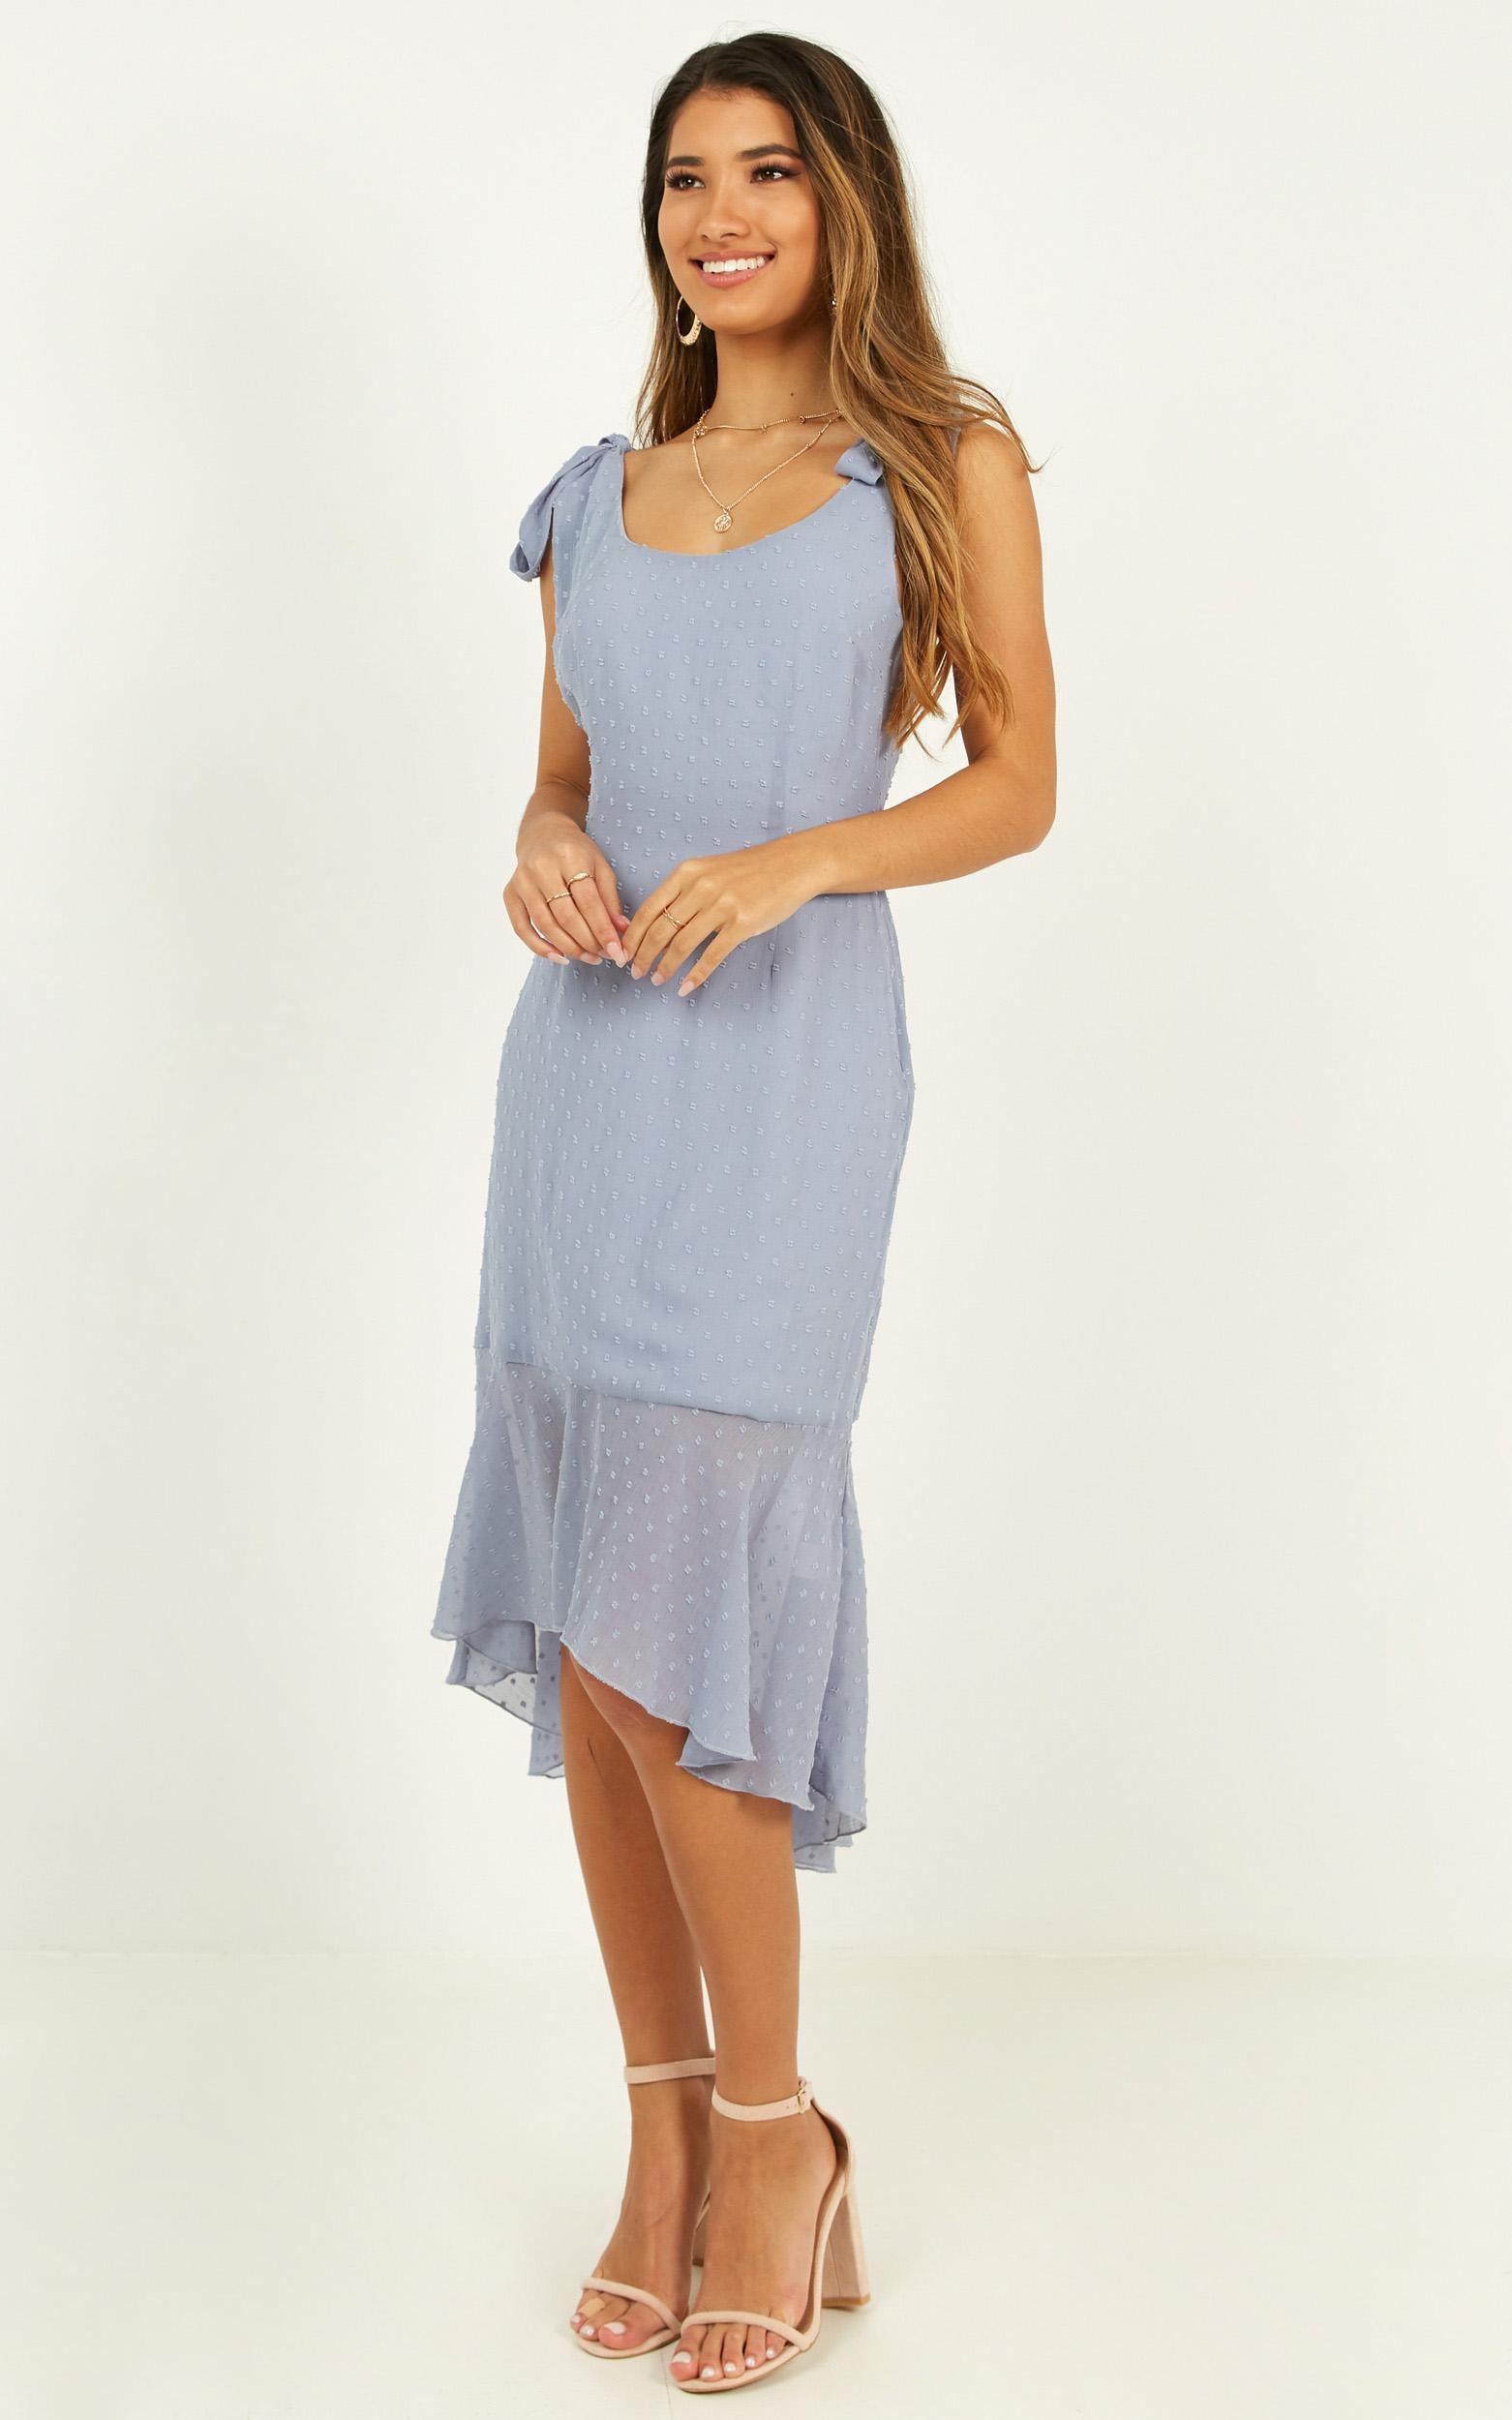 Turn To You Dress in dusty blue - 20 (XXXXL), Blue, hi-res image number null